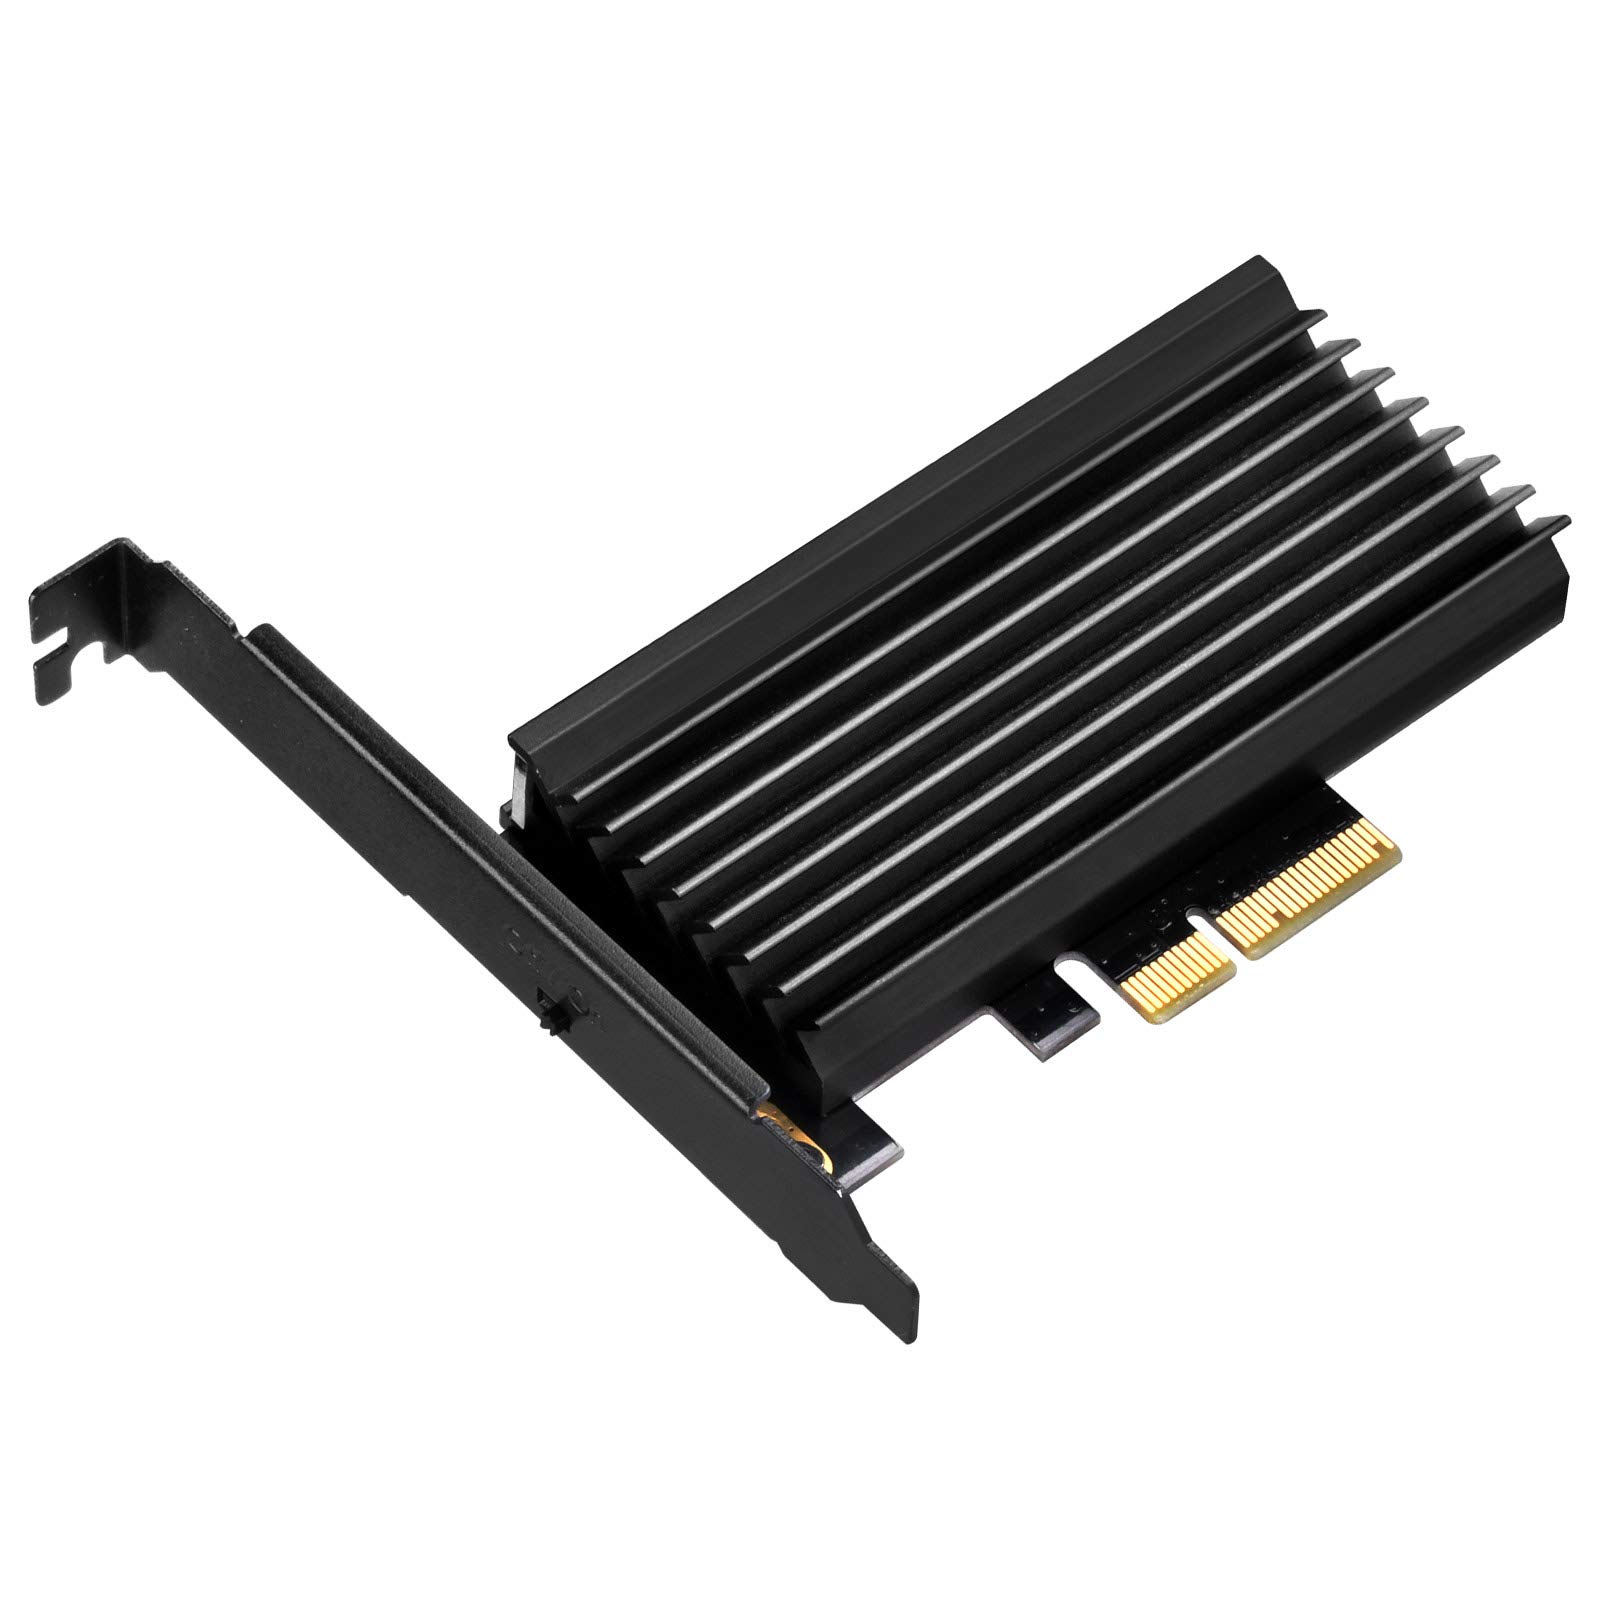 SilverStone Technology M.2 M Key PCIe NVMe Adapter to PCIe X4 with Integrated Heatsink SST-ECM24